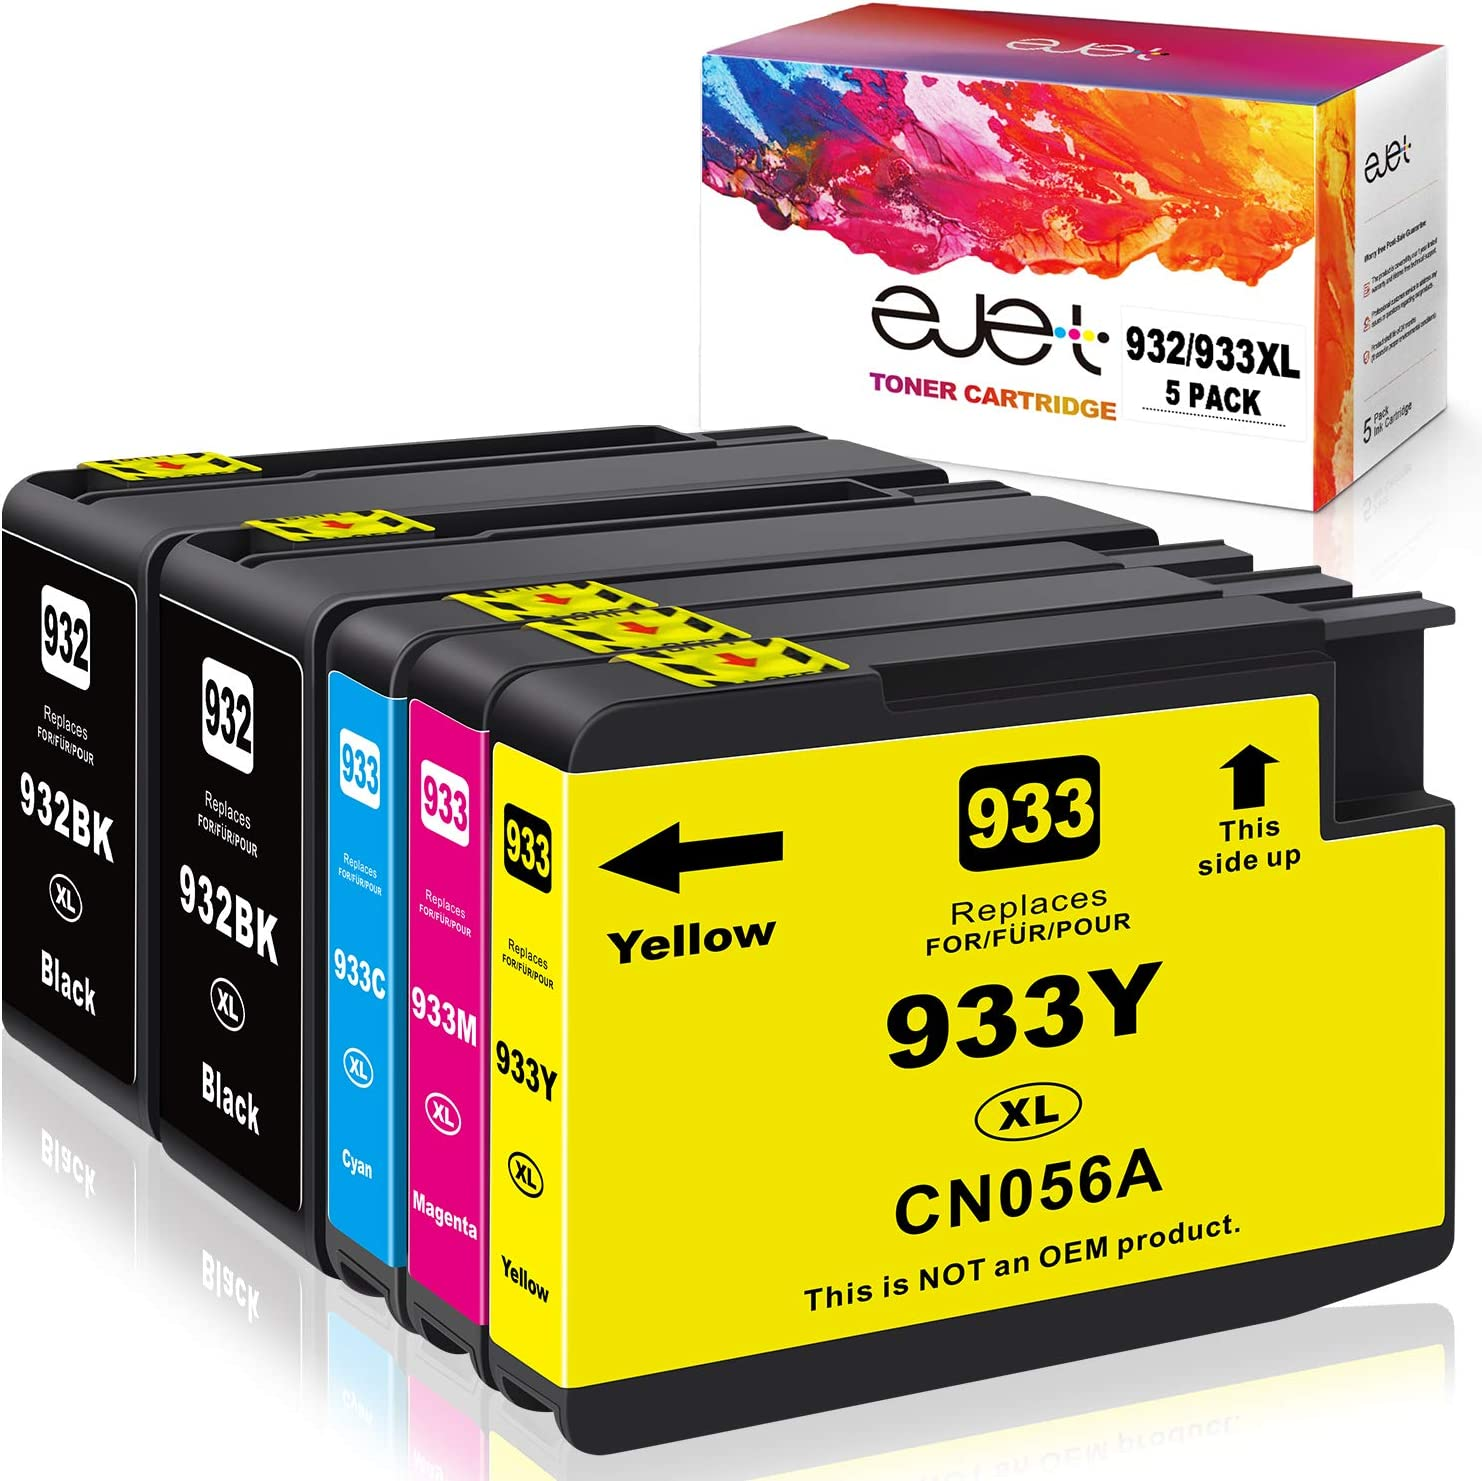 ejet Compatible Ink Cartridge Replacement for HP 932XL 933XL 932 933 XL for Officejet 6100 6600 6700 7110 7610 7612 Printer (2 Black 1 Cyan 1 Magenta 1 Yellow, 5-Pack)